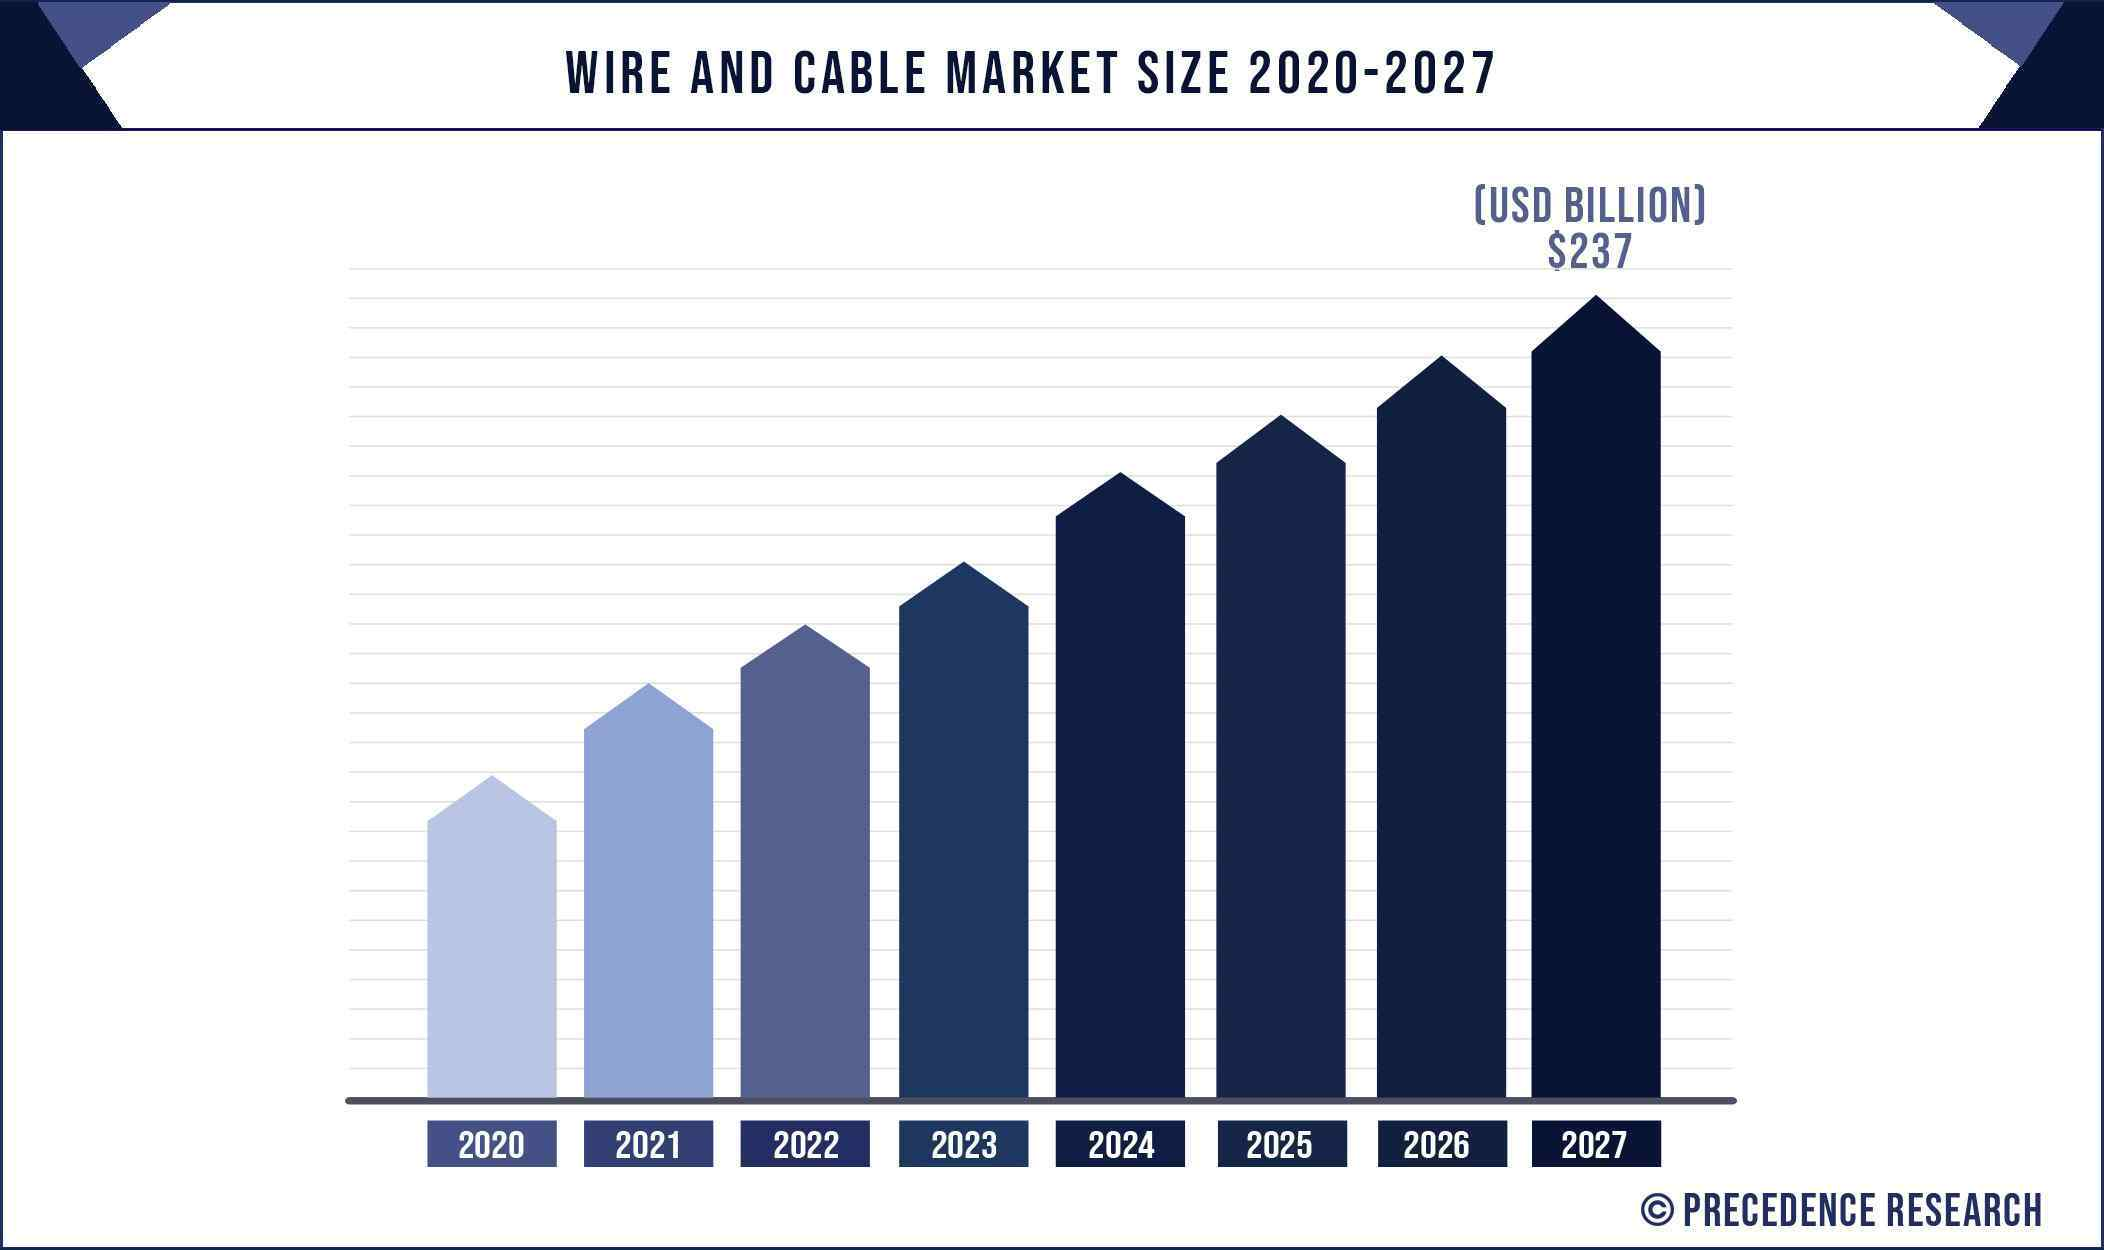 Wire and Cable Market Size 2020 to 2027